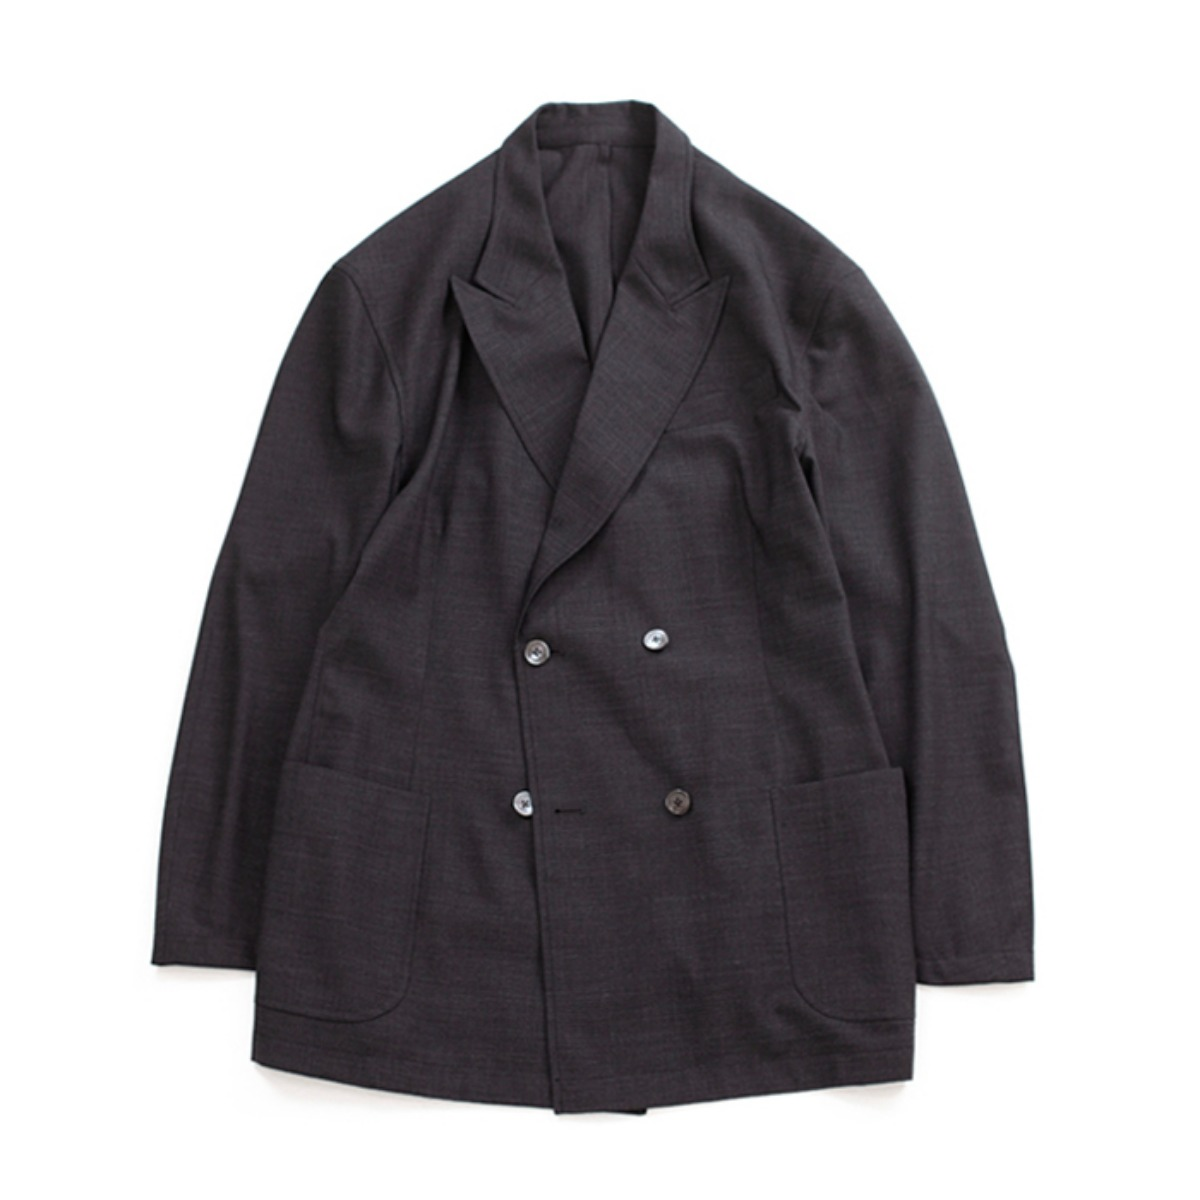 [BROWNYARD] DOUBLE BREASTED JACKET 'GREY'